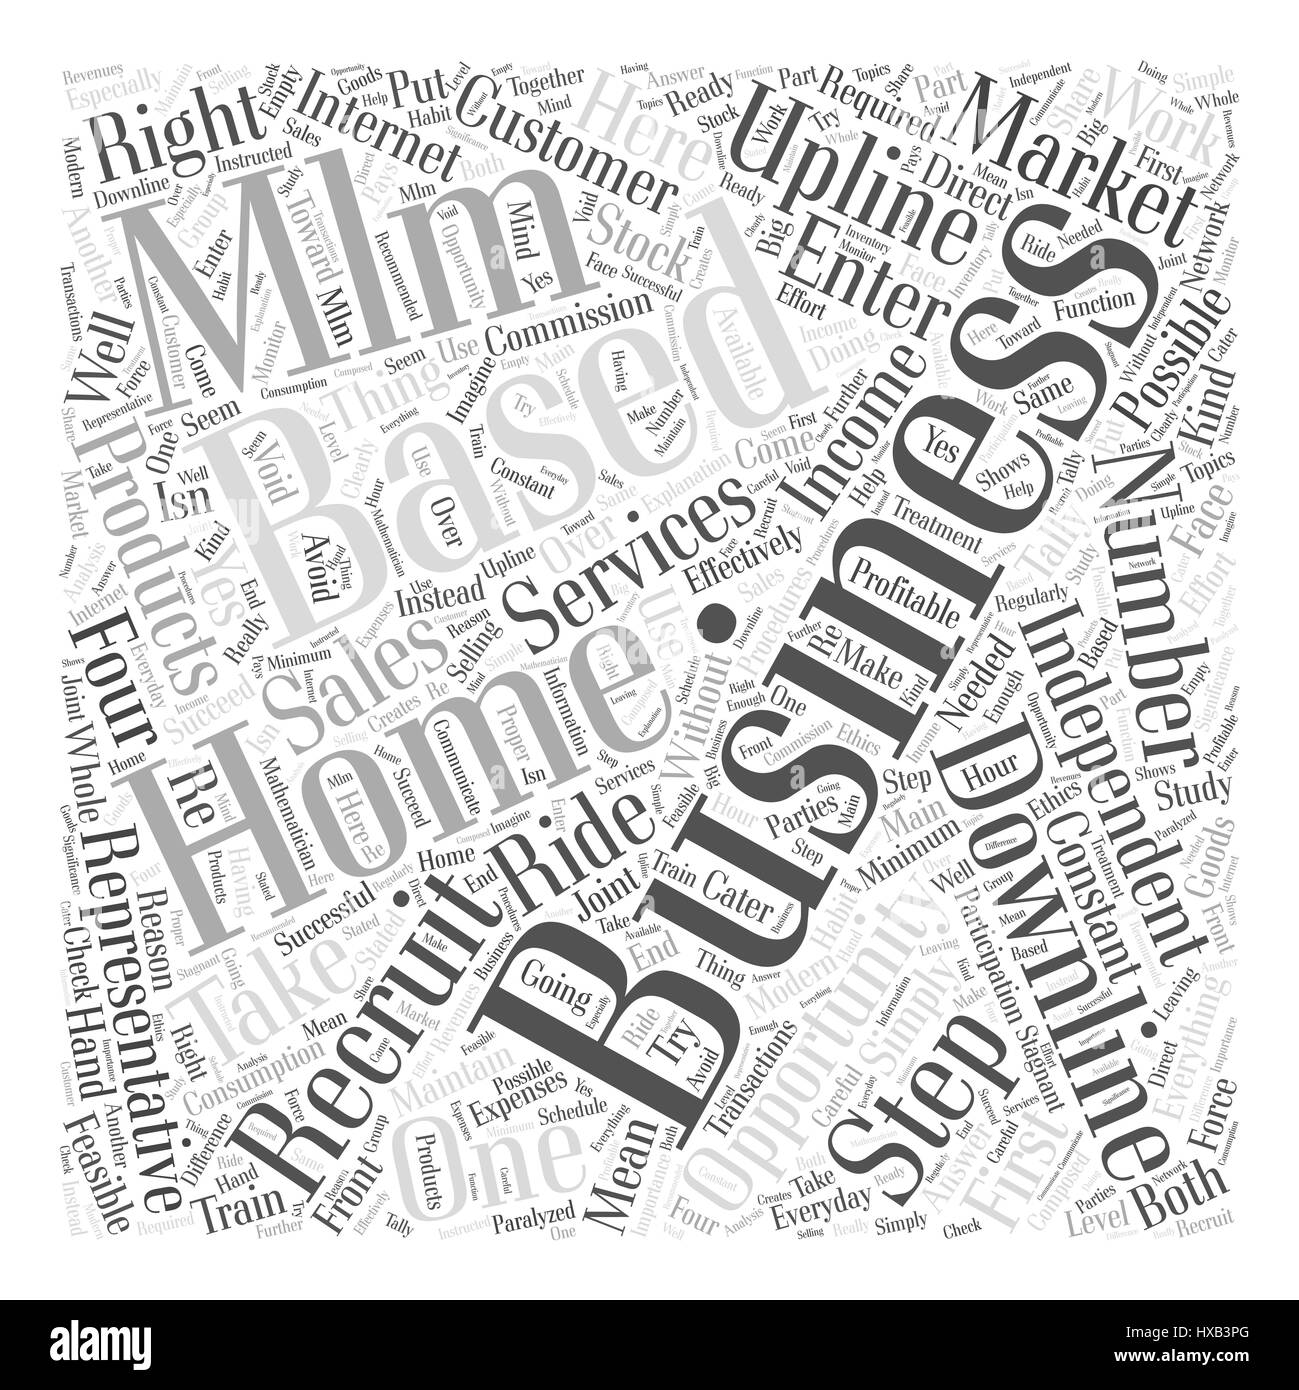 Home Based MLM Business Opportunity Business Word Cloud Concept ...